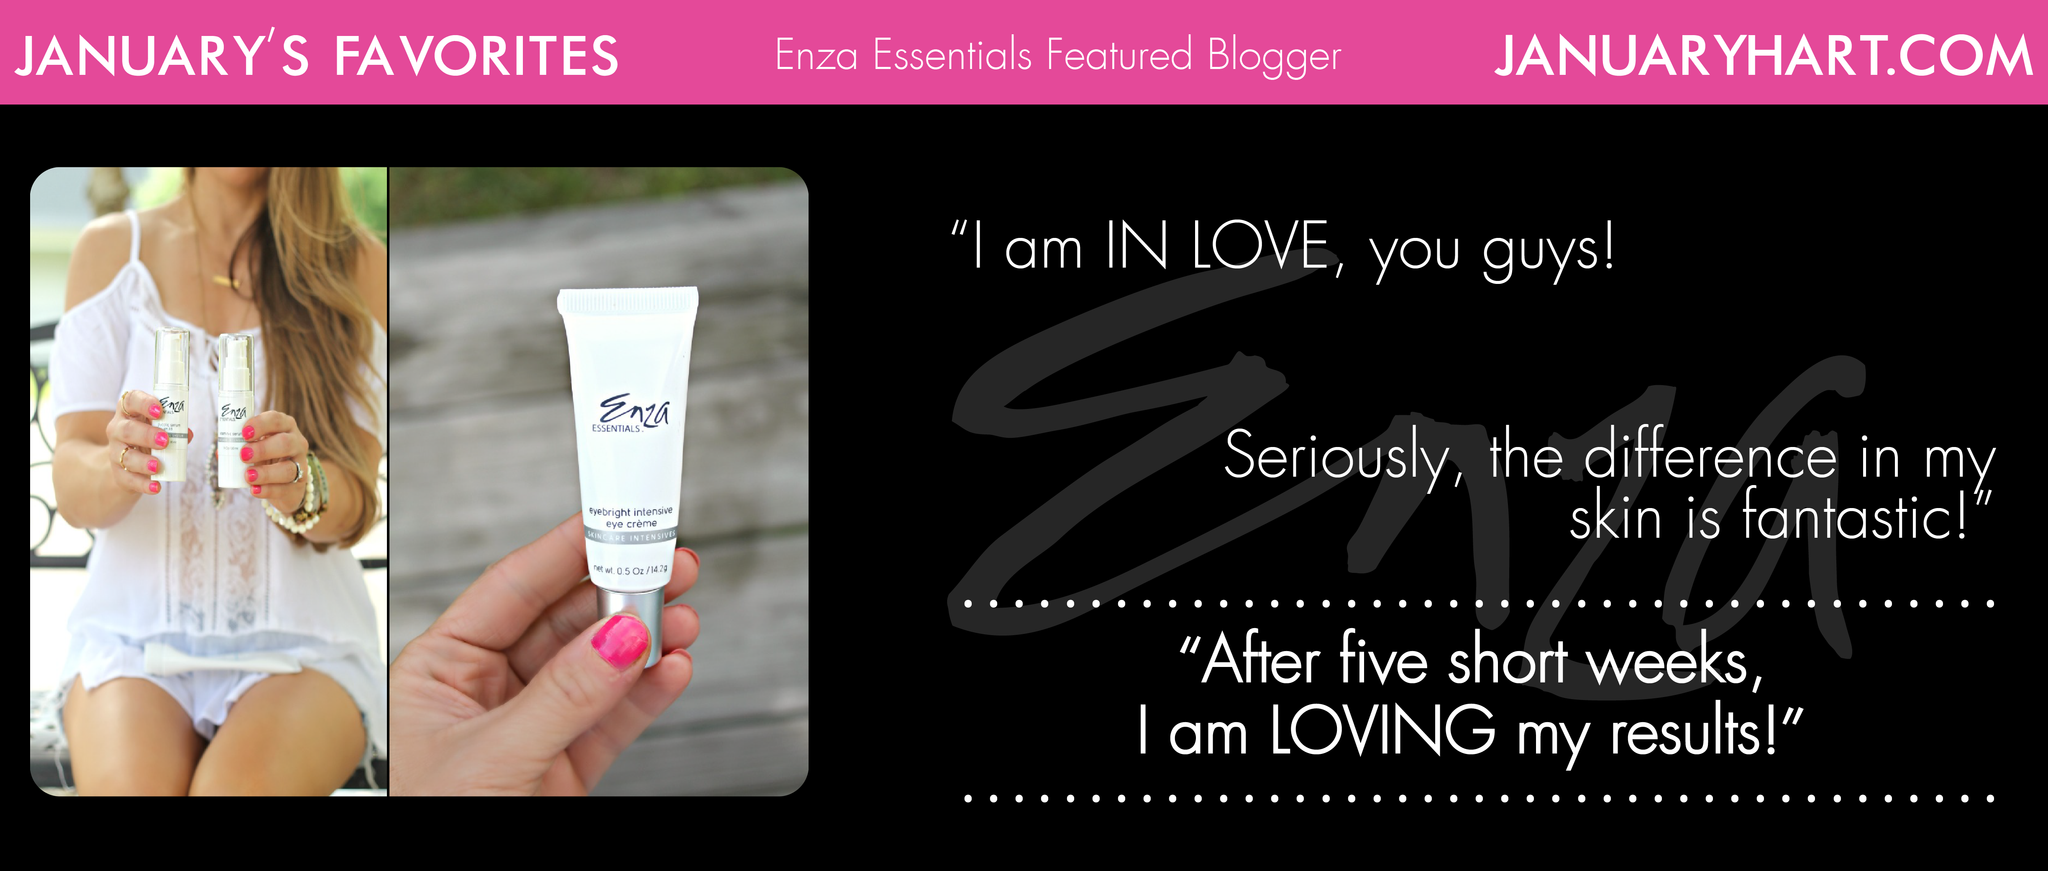 January Hart Enza Essentials Review